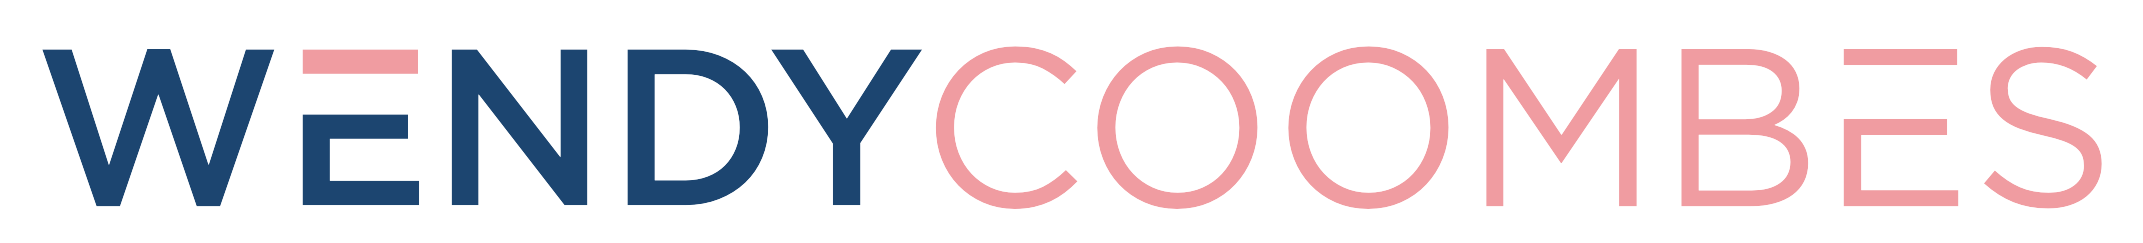 logo Wendy Coombes Soft Pink Transparent.png